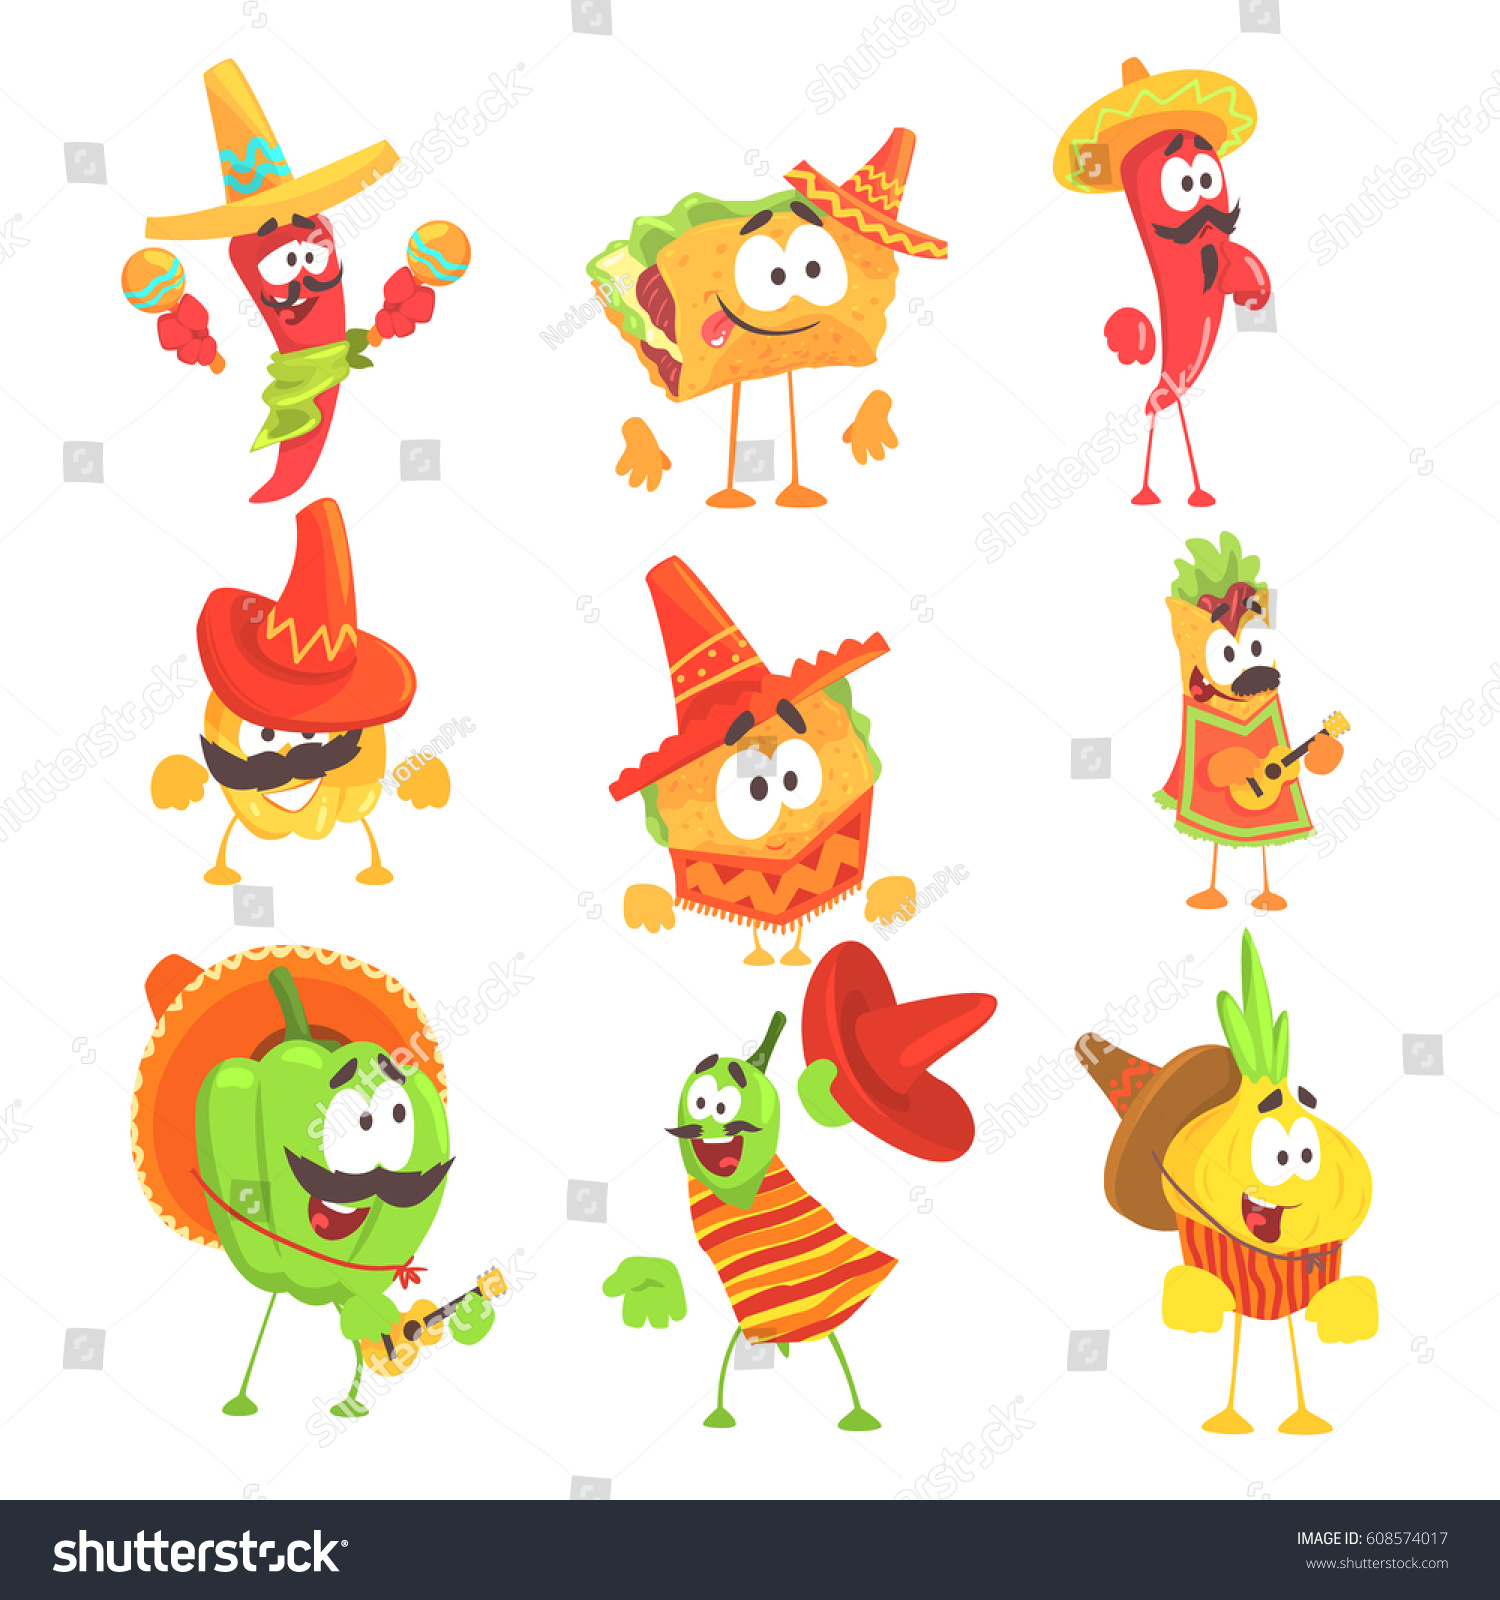 Cartoon Characters Mexican : Mexican food vegetables series cool cartoon stock vector